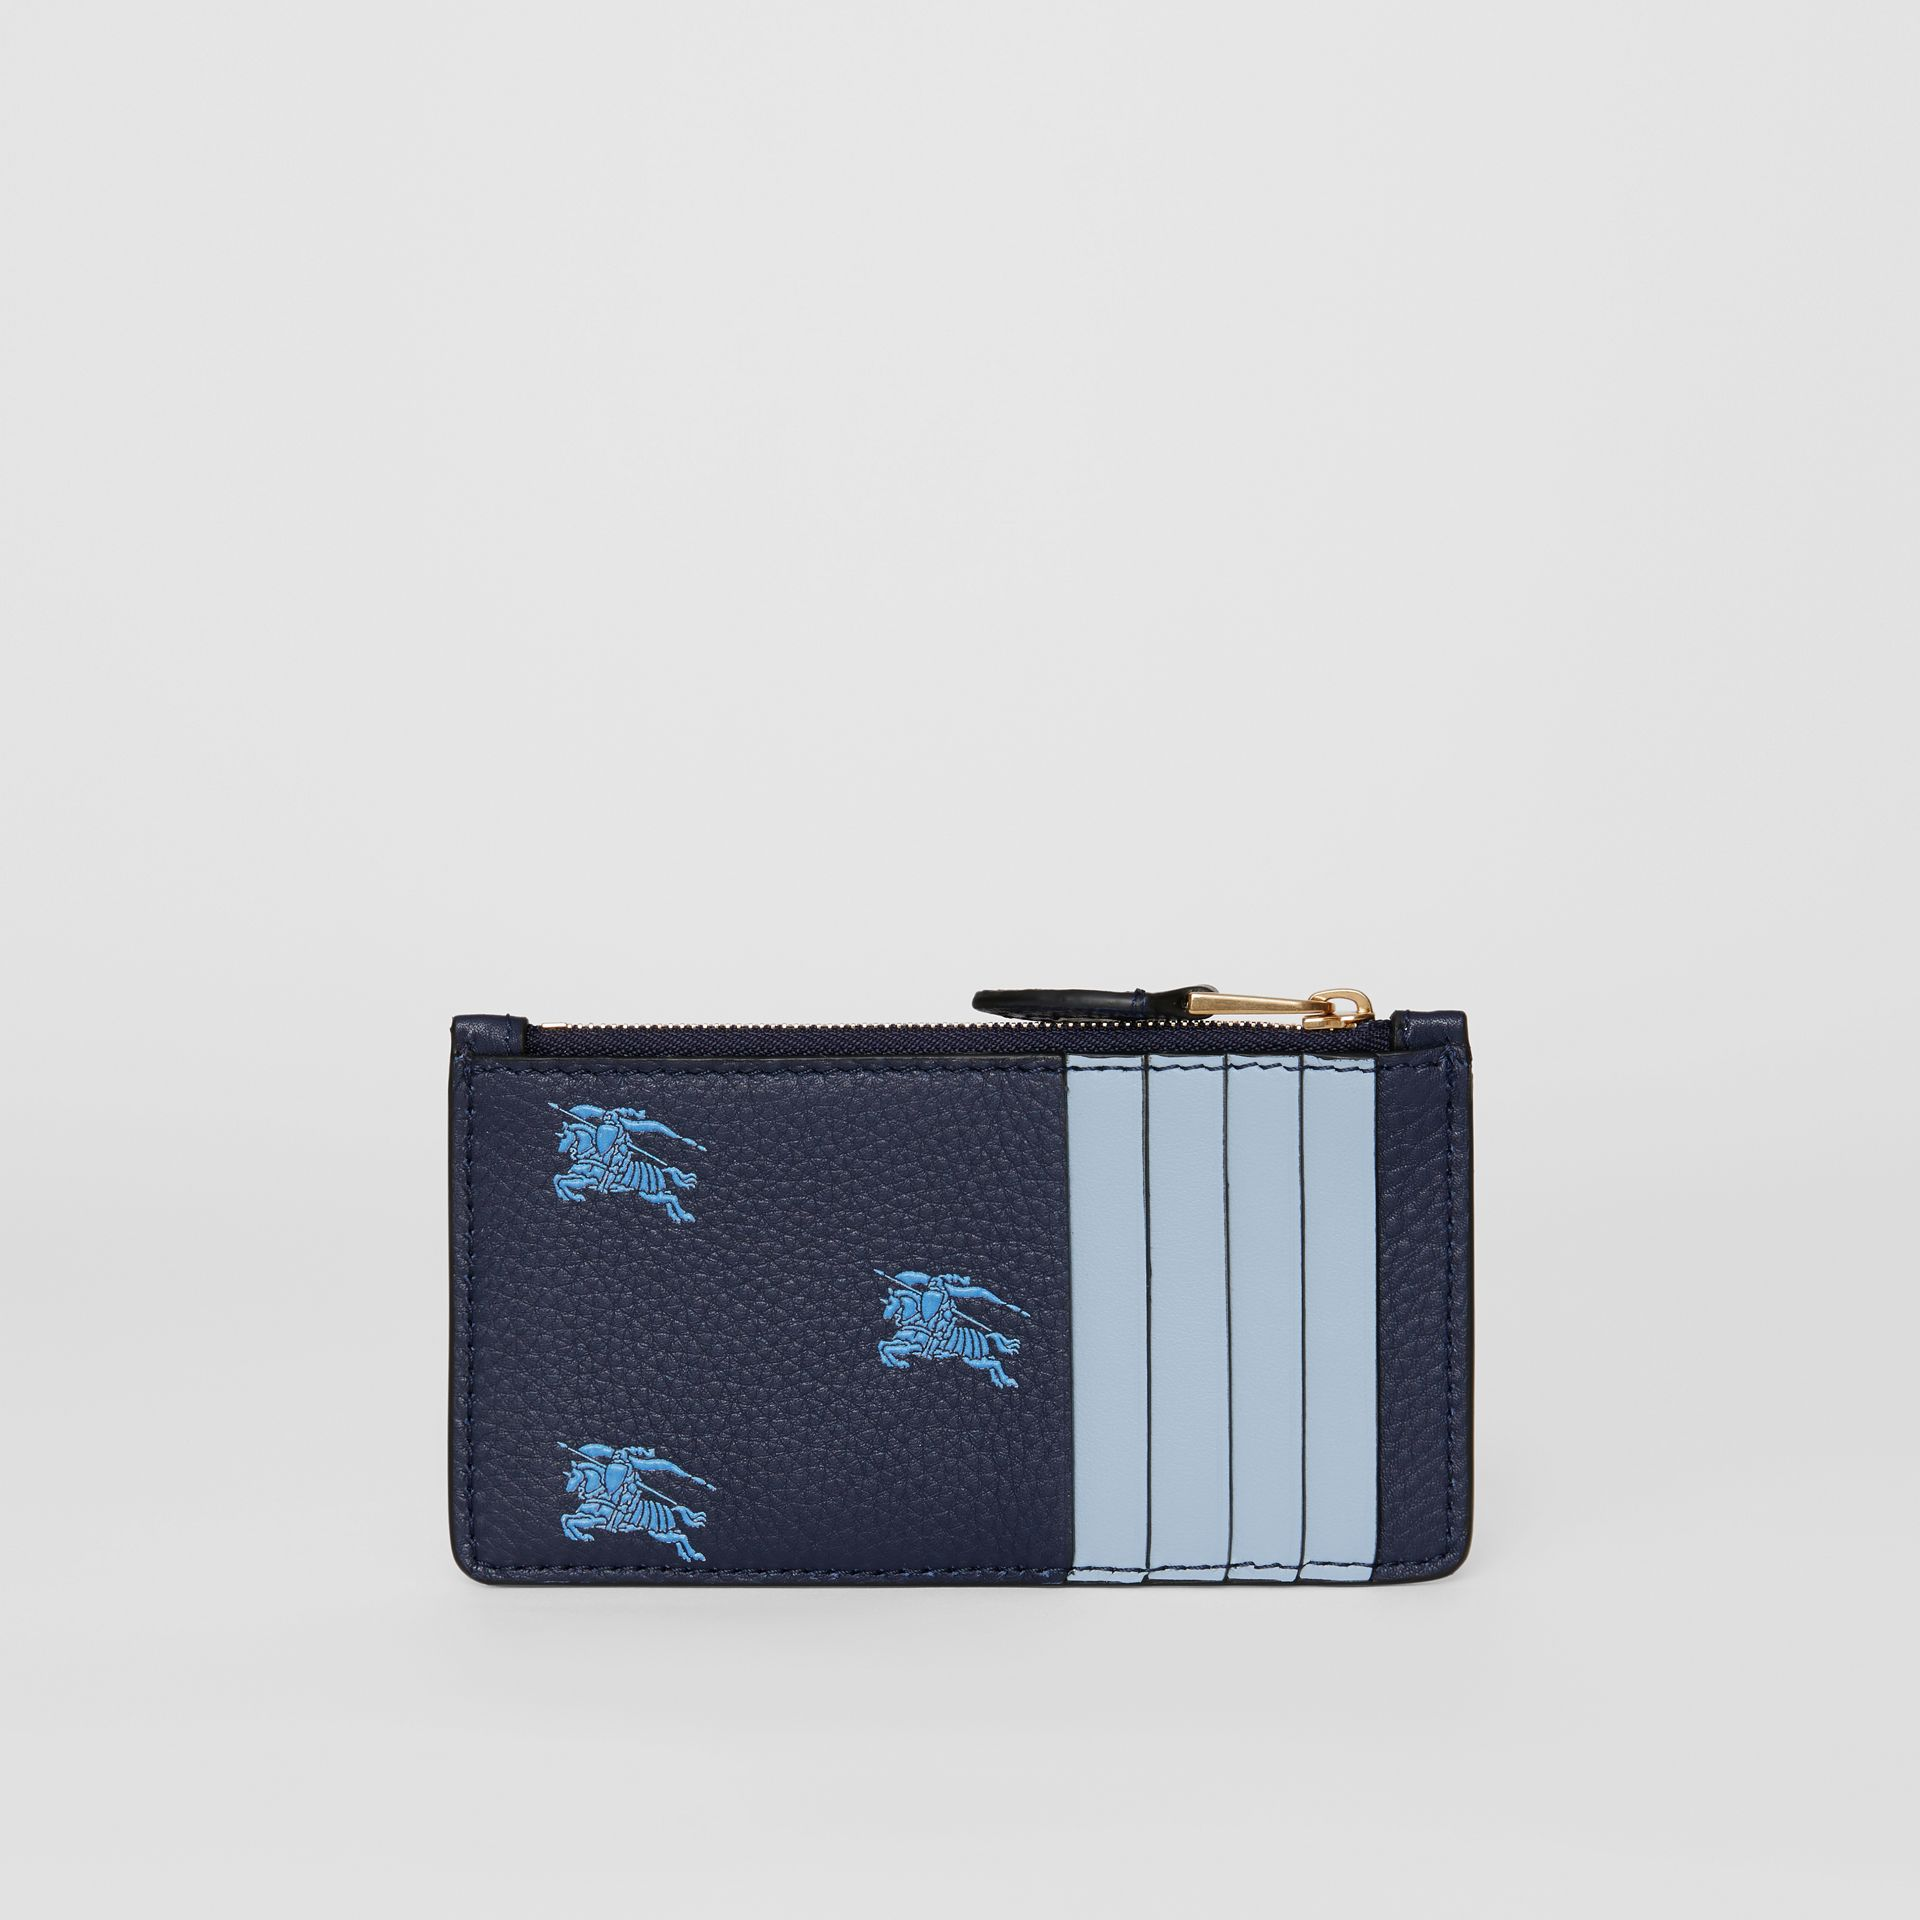 Equestrian Knight Leather Zip Card Case in Regency Blue - Women | Burberry United Kingdom - gallery image 3